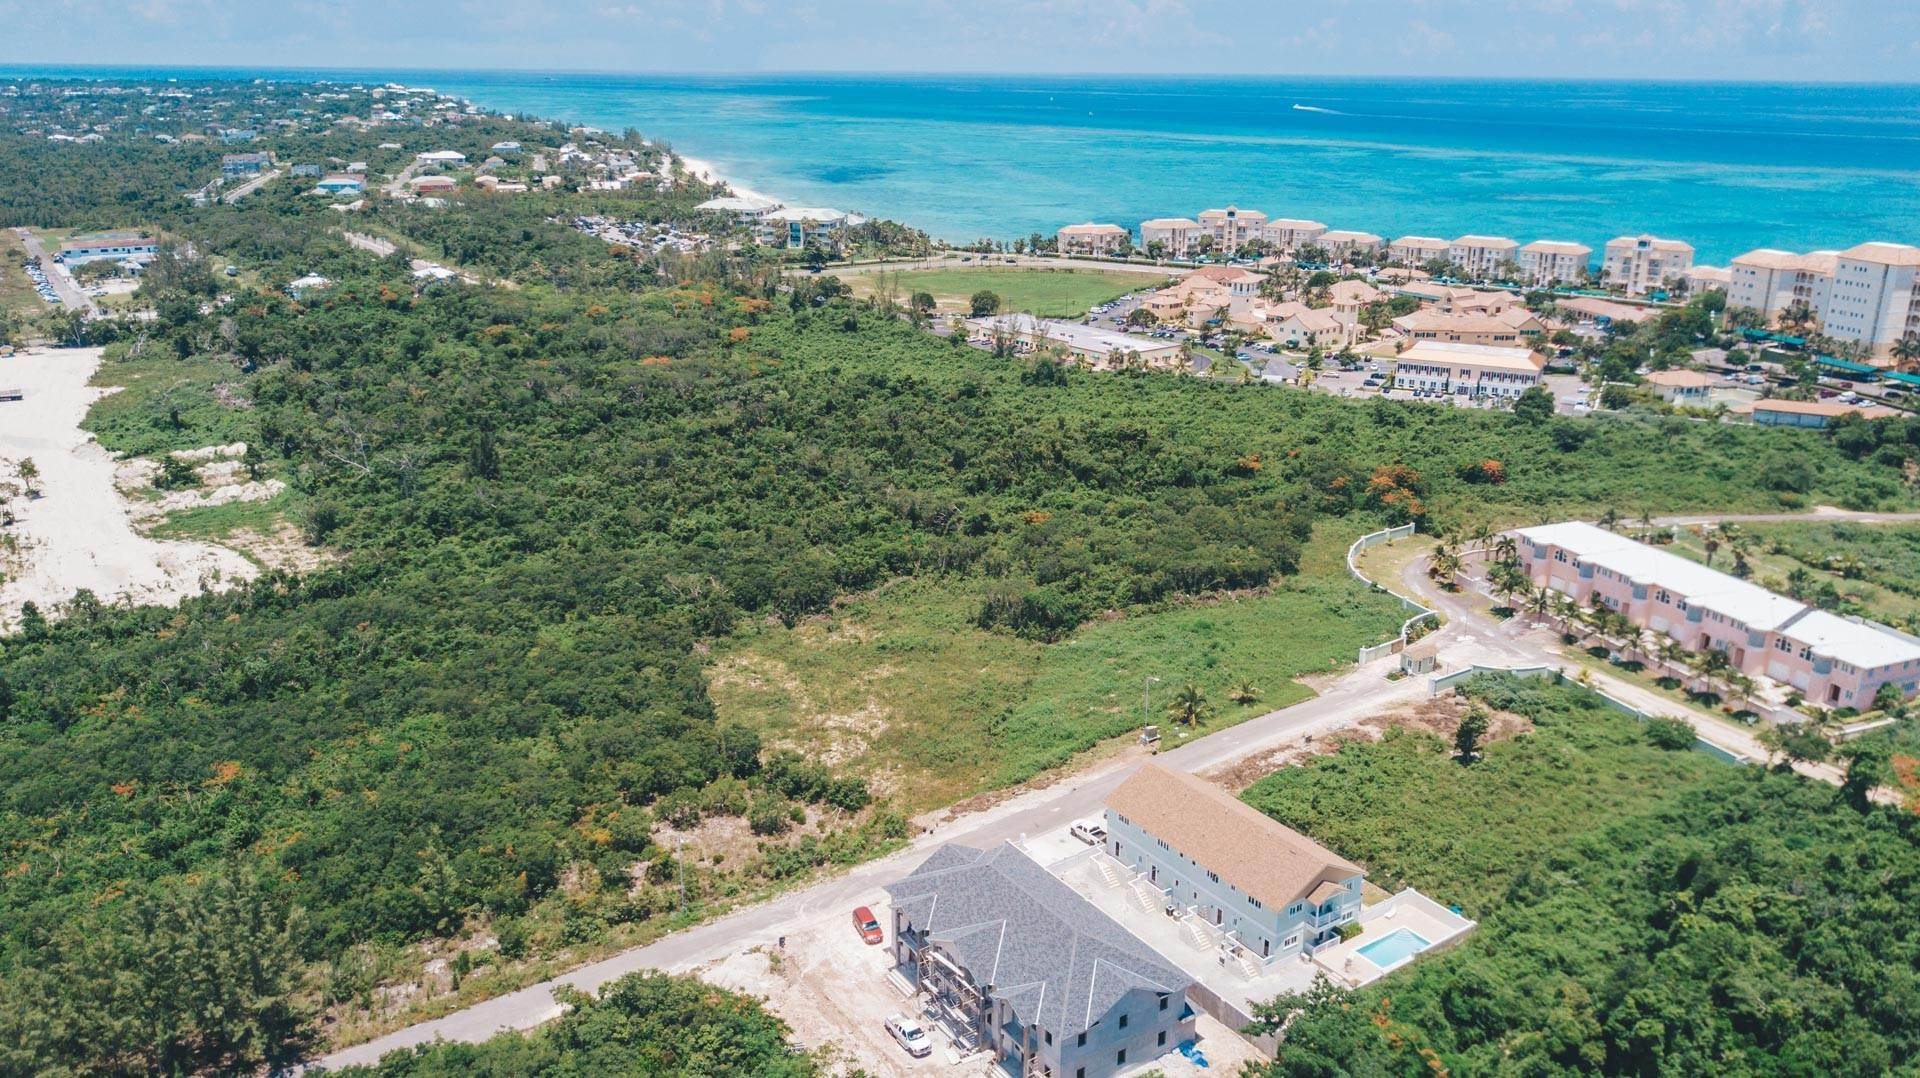 9. Terreno por un Venta en Lot 13 West Lake Plantation - MLS 35050 Nueva Providencia / Nassau, Bahamas